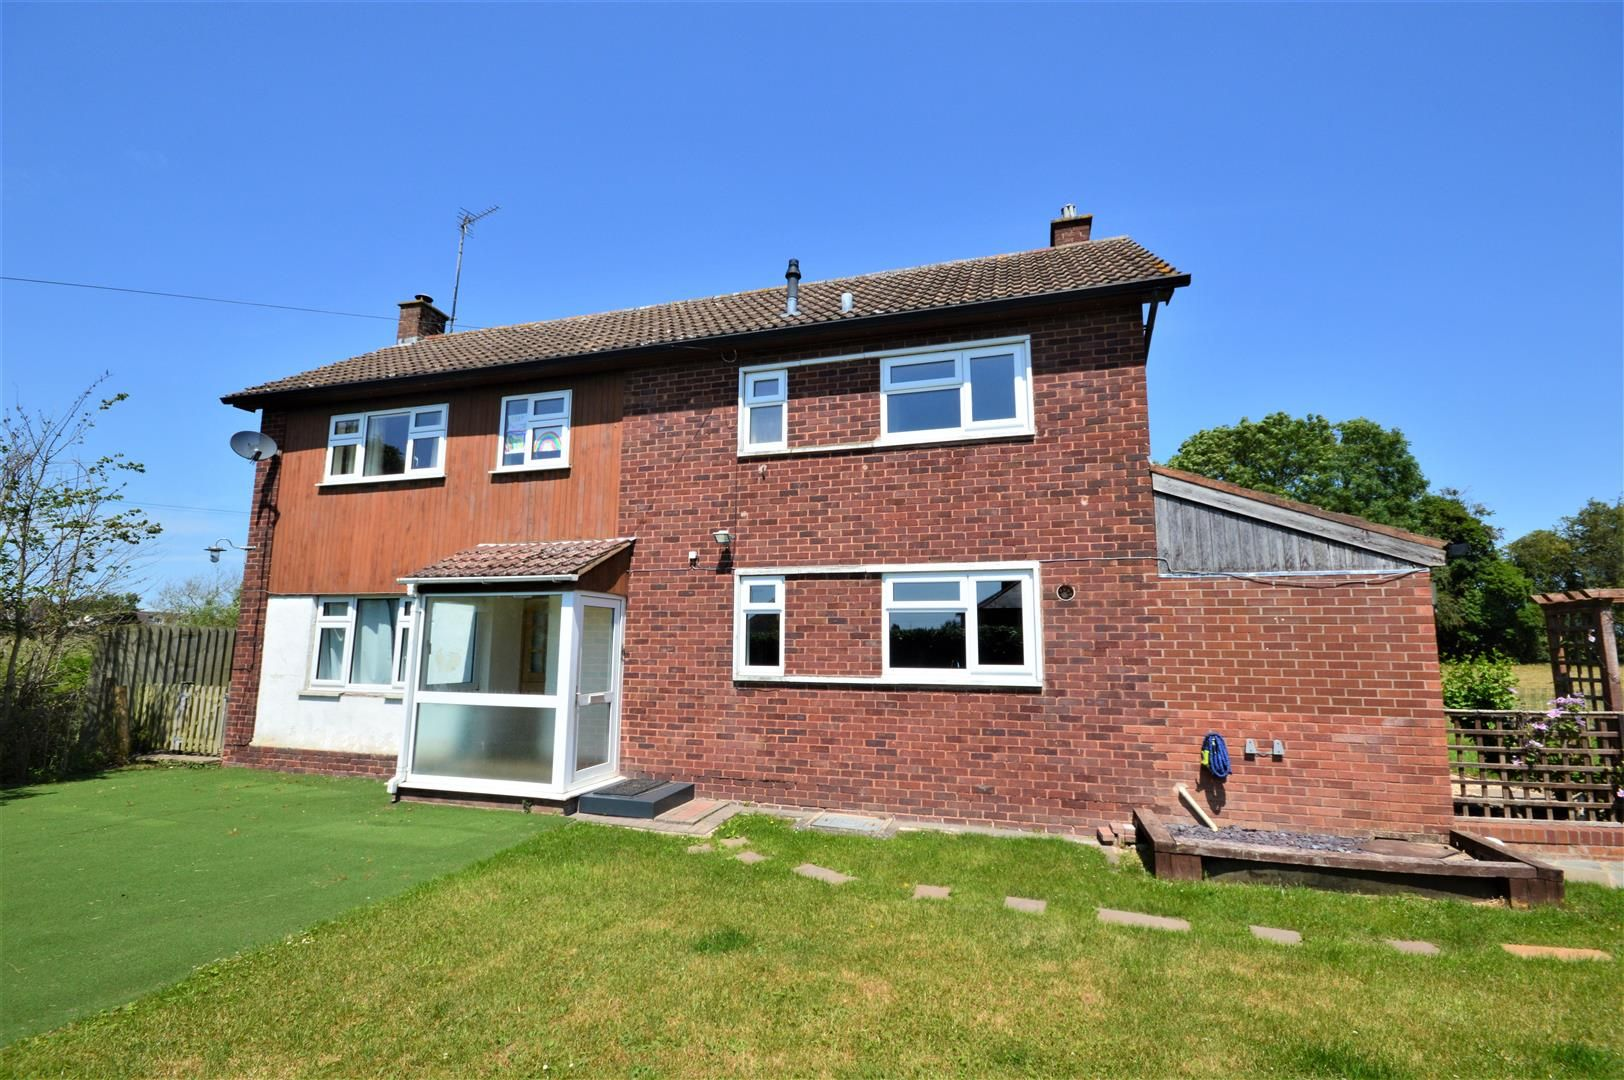 5 bed detached for sale in Sutton St. Nicholas  - Property Image 4